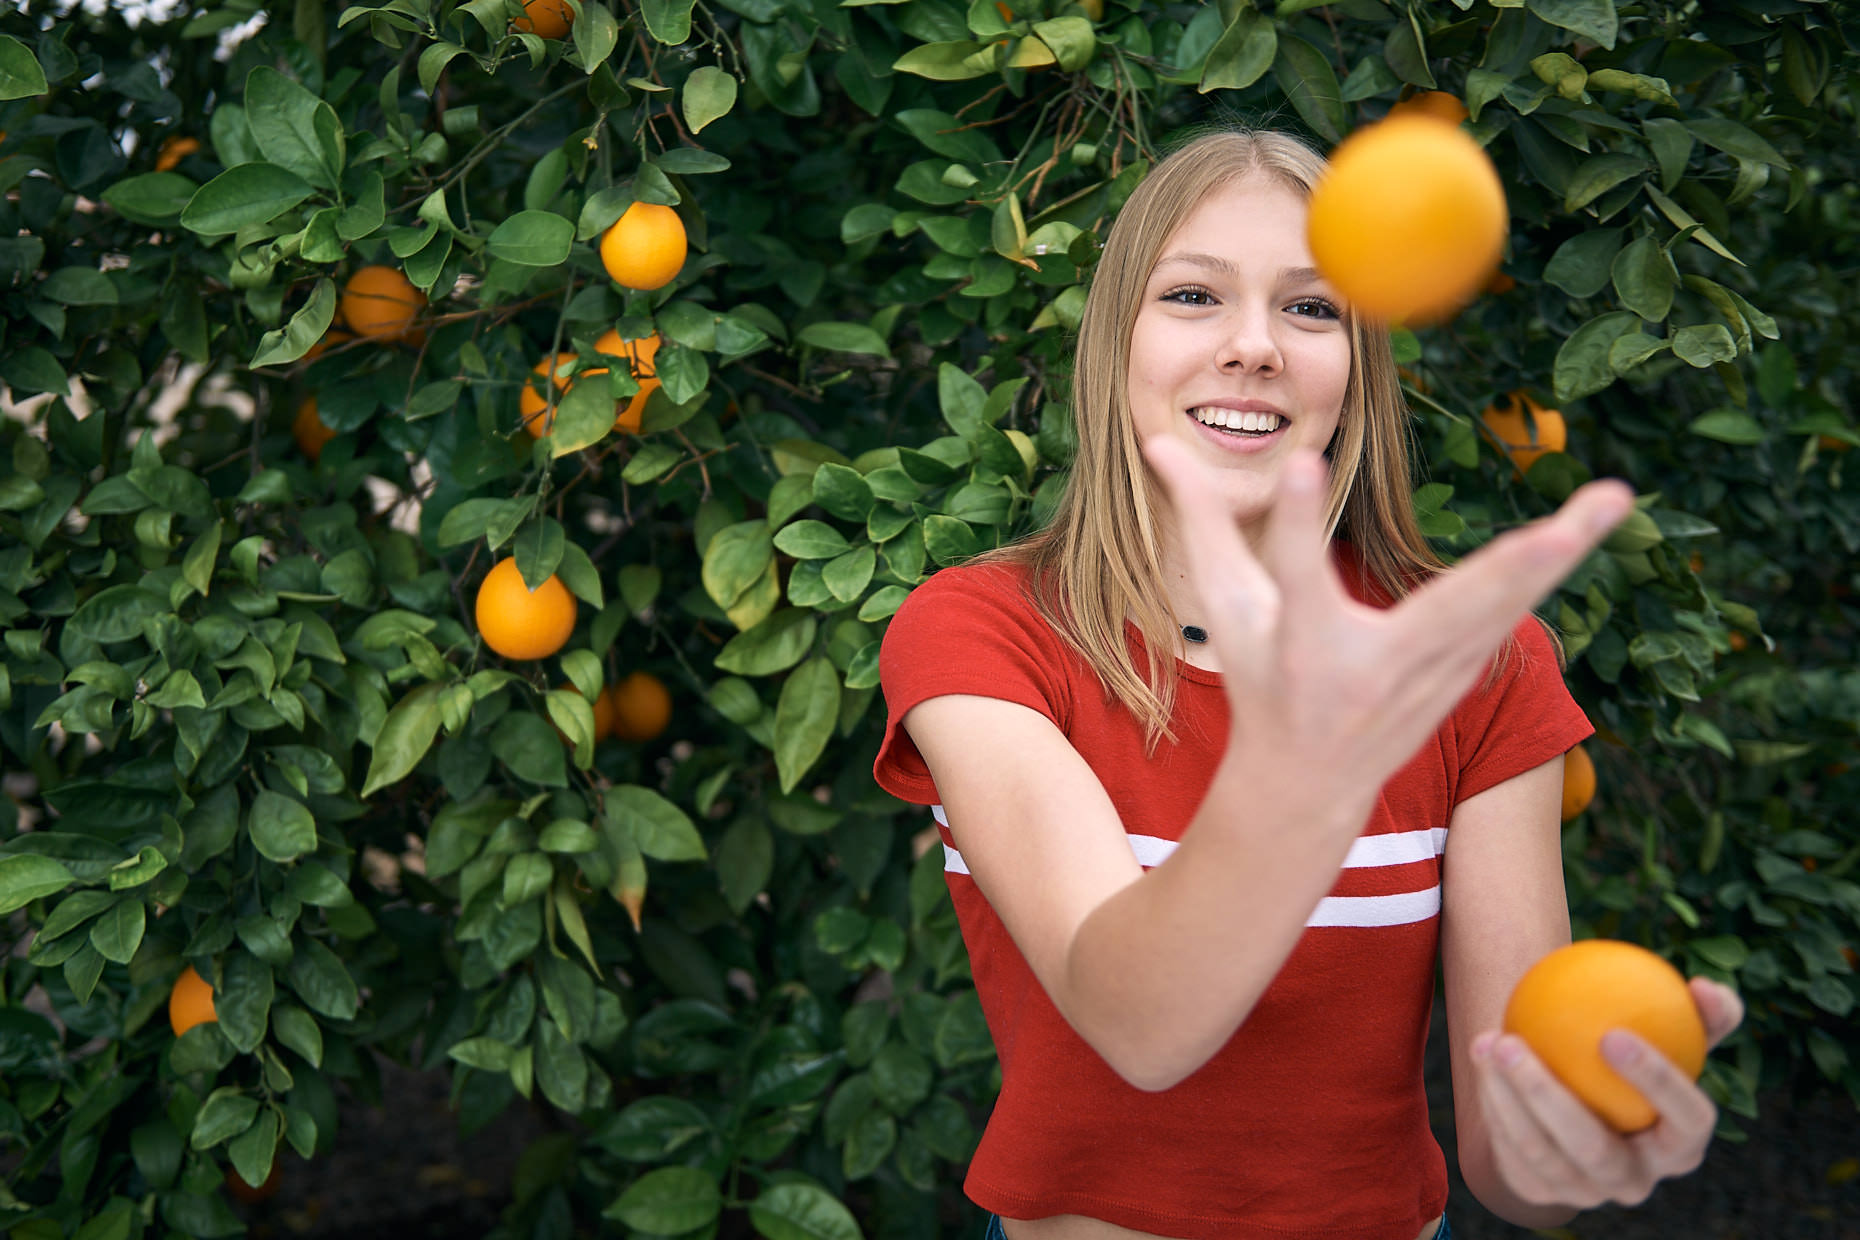 Jason Tracy - Advertising Photographer Kansas City - Young Girl with Orange Tree